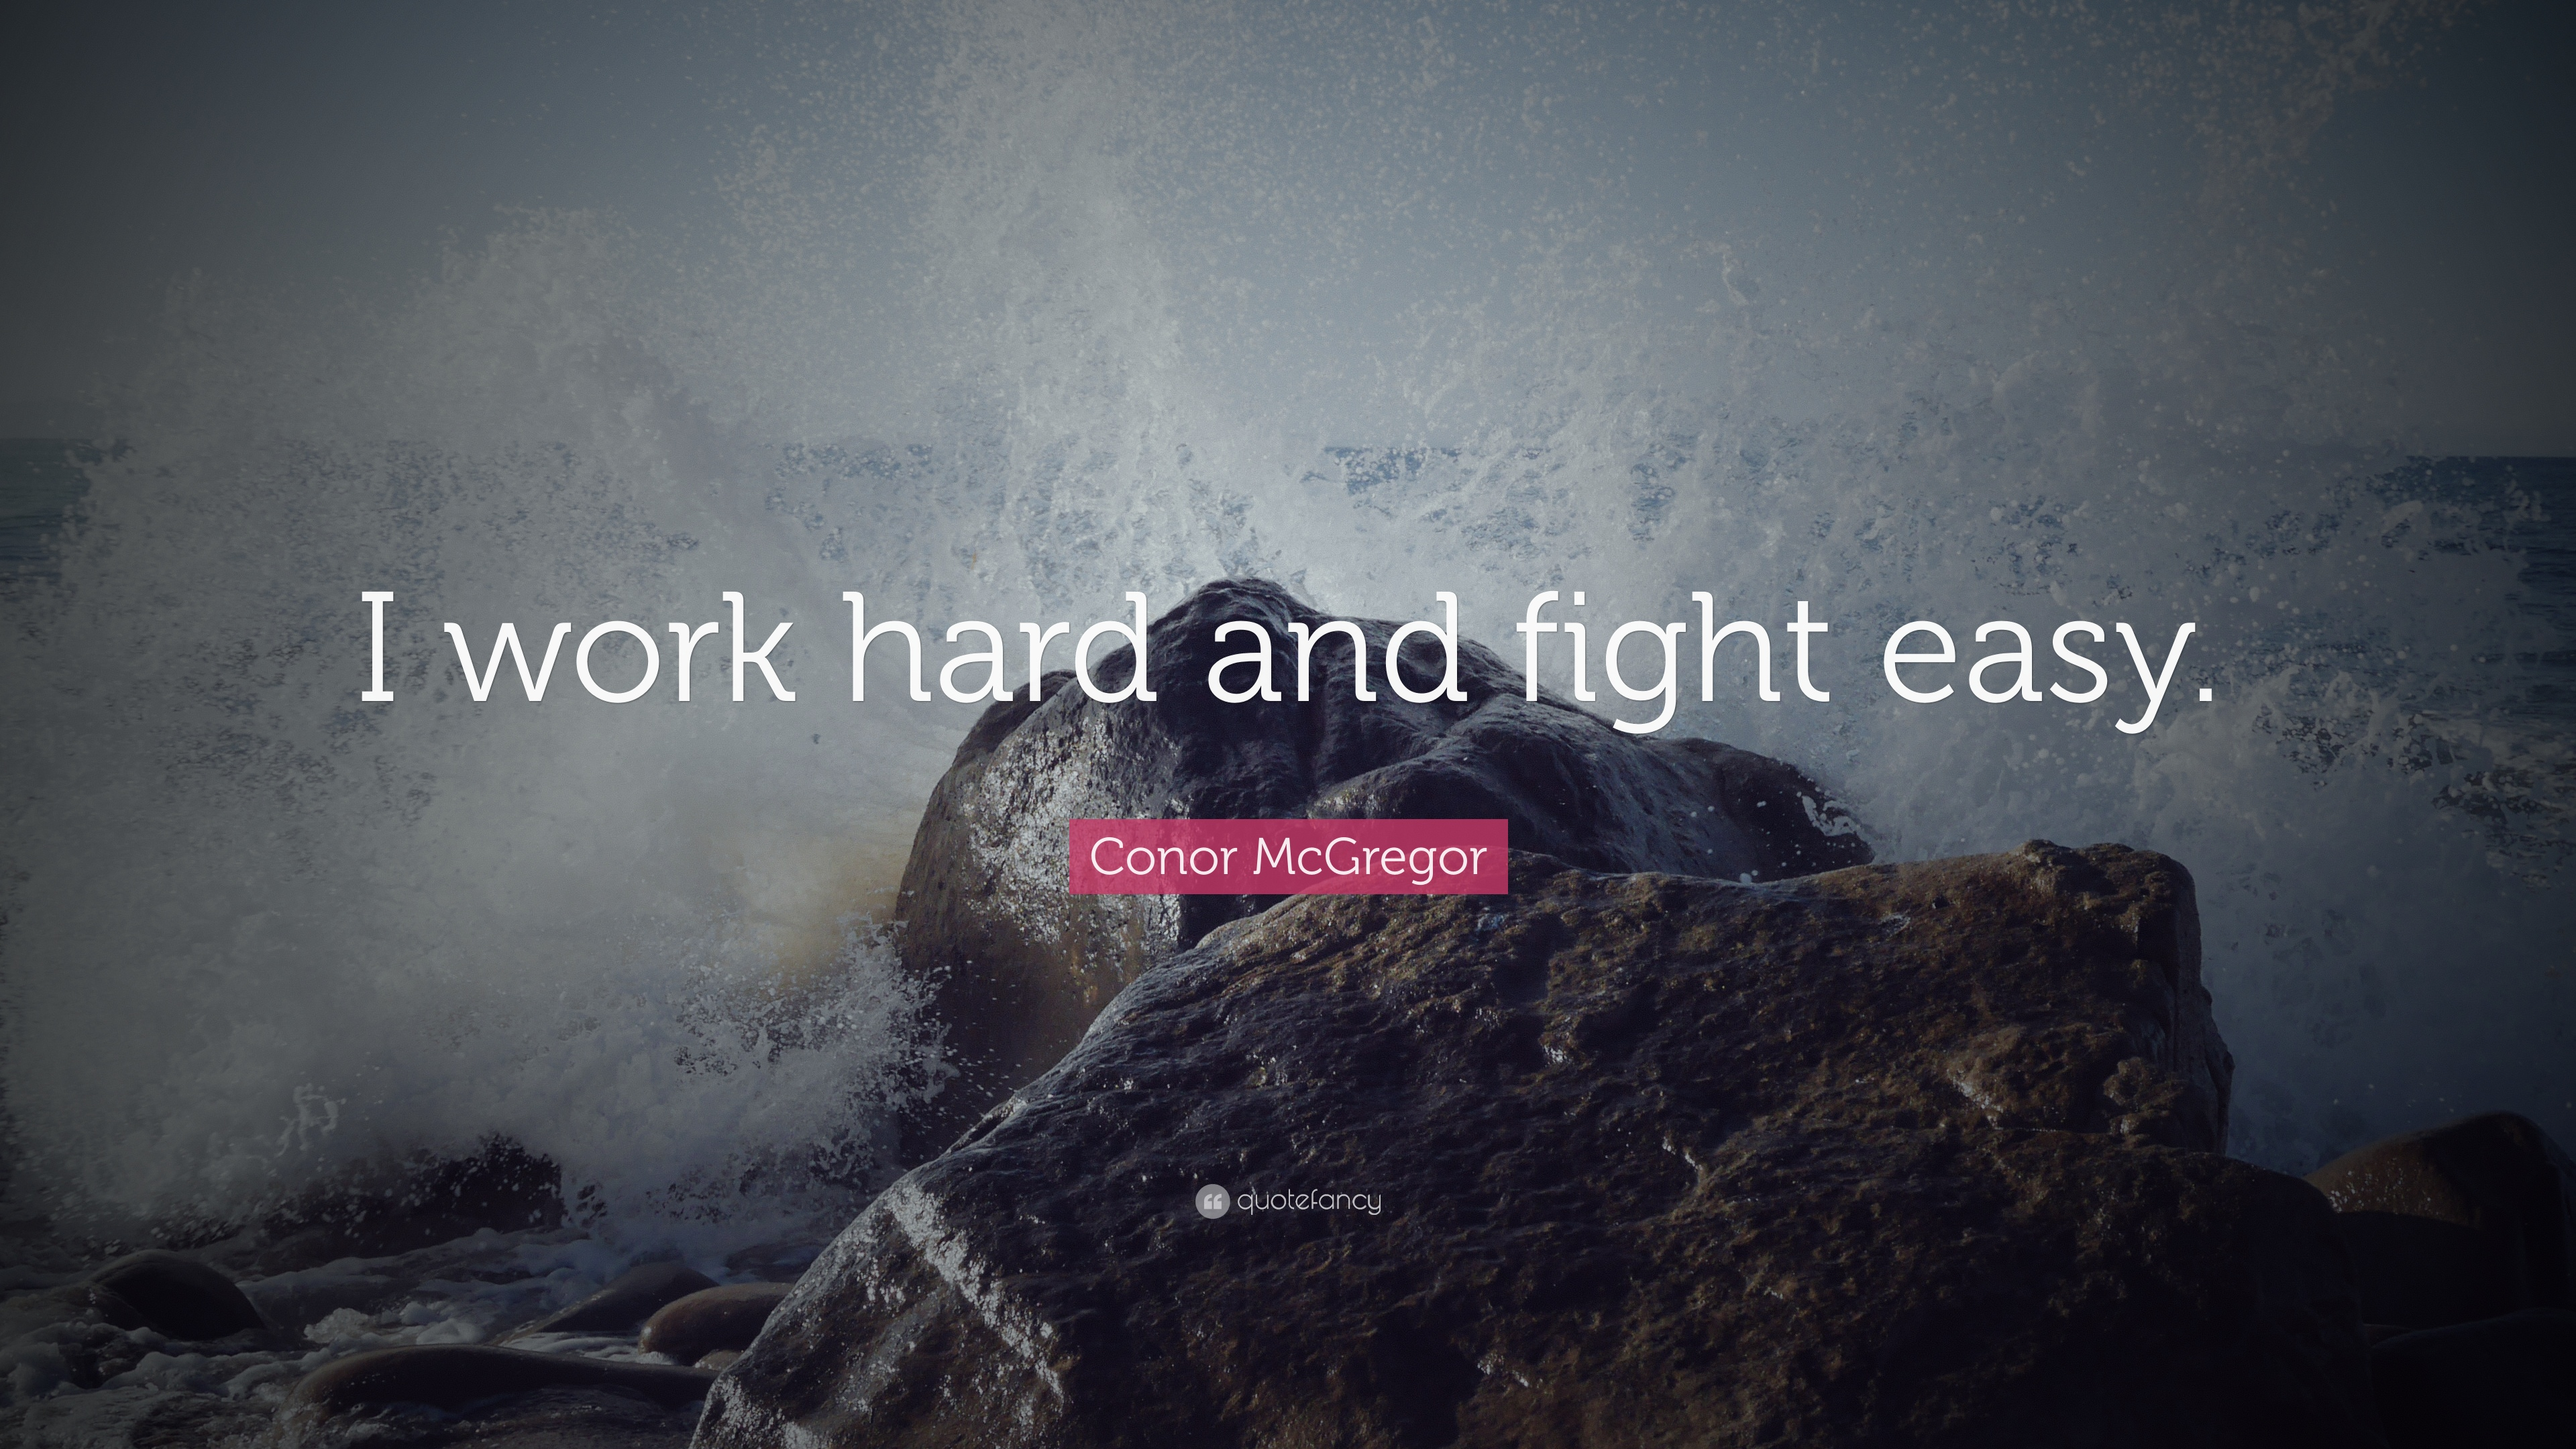 Hard work quotes 40 wallpapers quotefancy hard work quotes i work hard and fight easy conor mcgregor altavistaventures Gallery